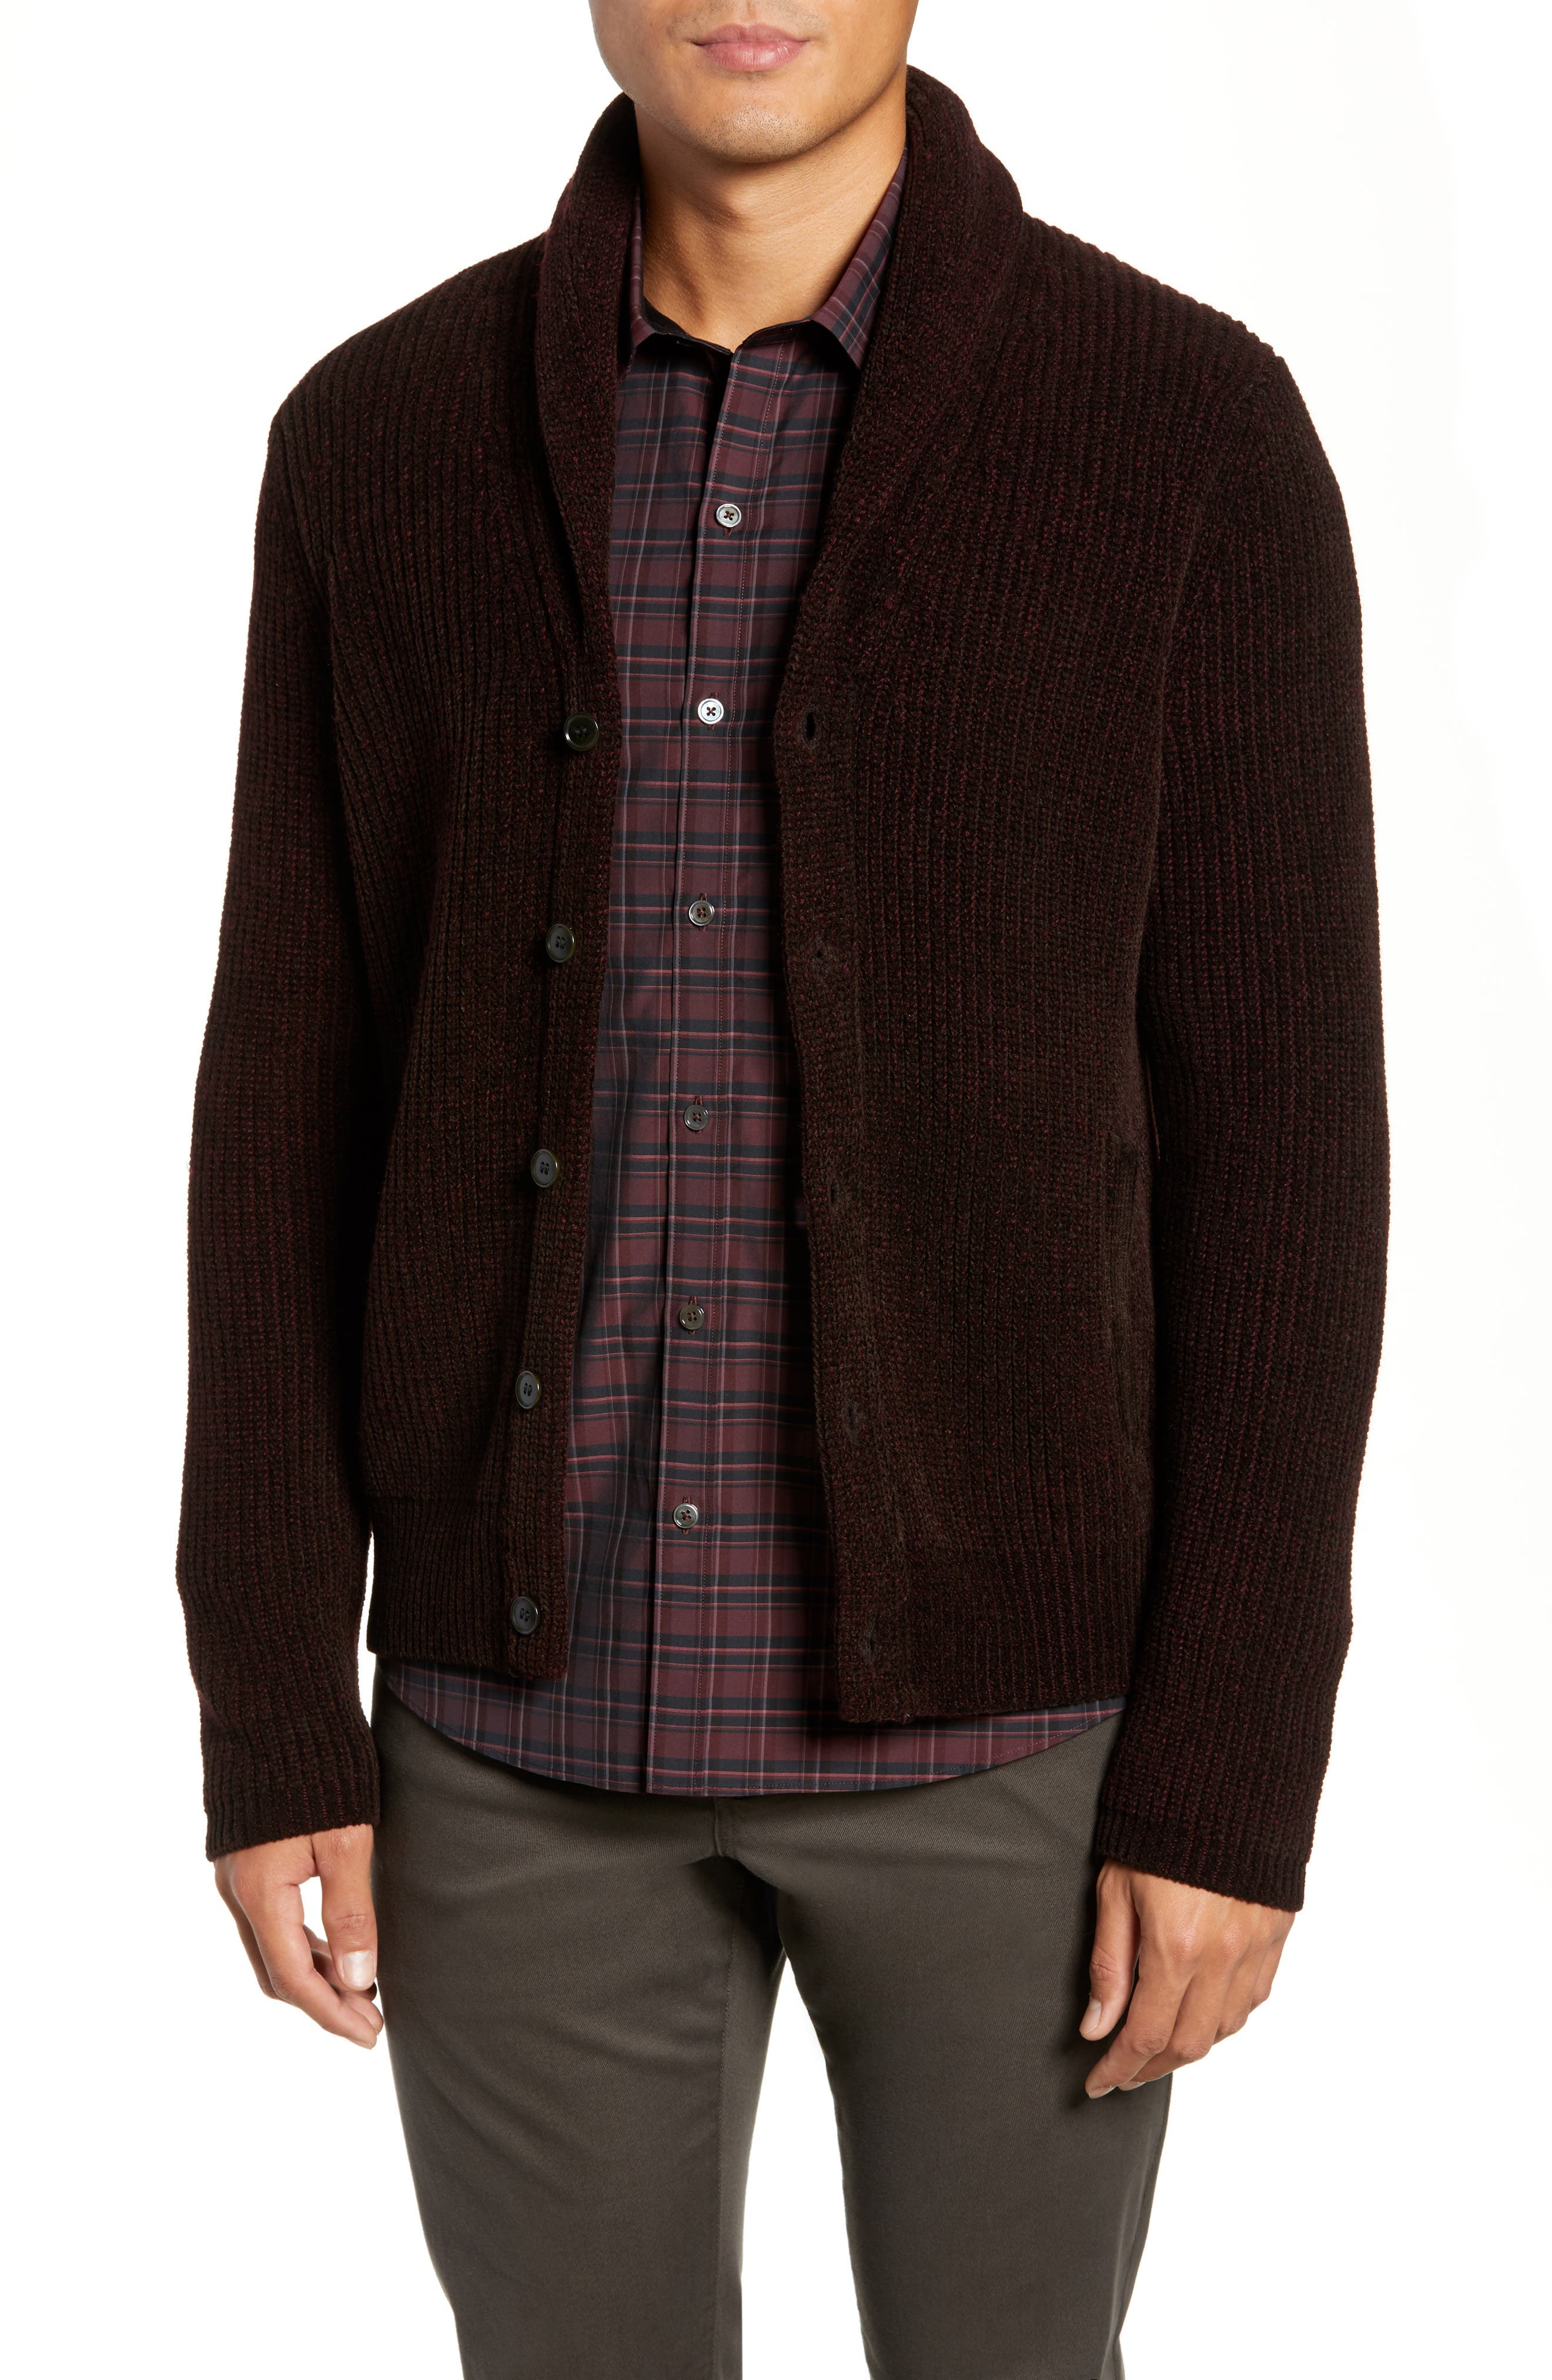 ZACHARY PRELL Quincy Regular Fit Shawl Collar Cardigan in Brown